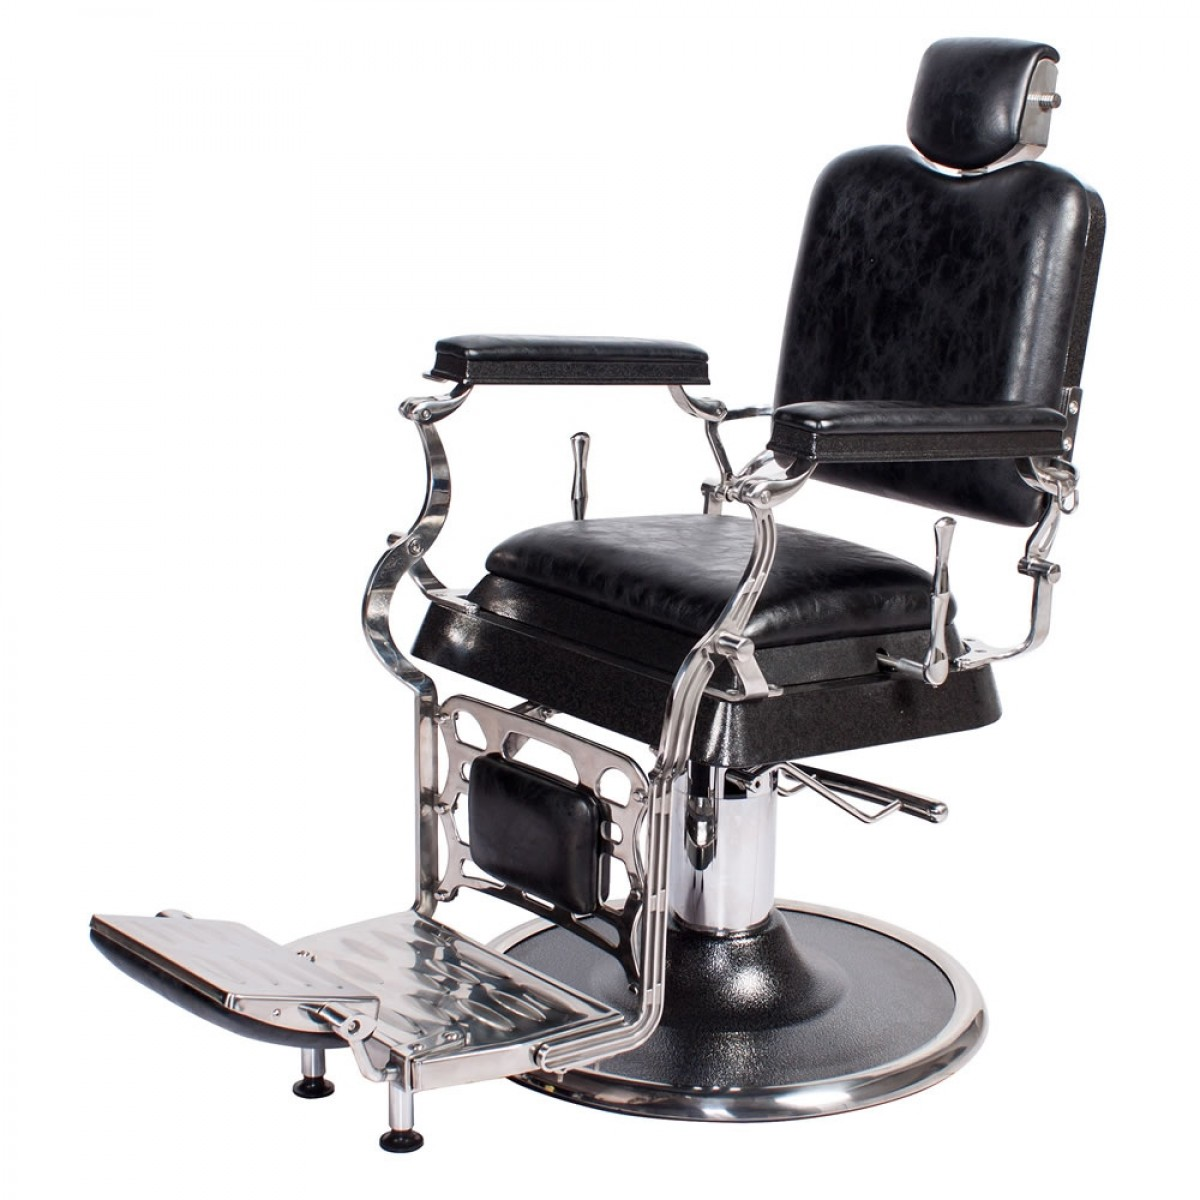 barber shop equipment, barber shop chairs, barber shop furniture